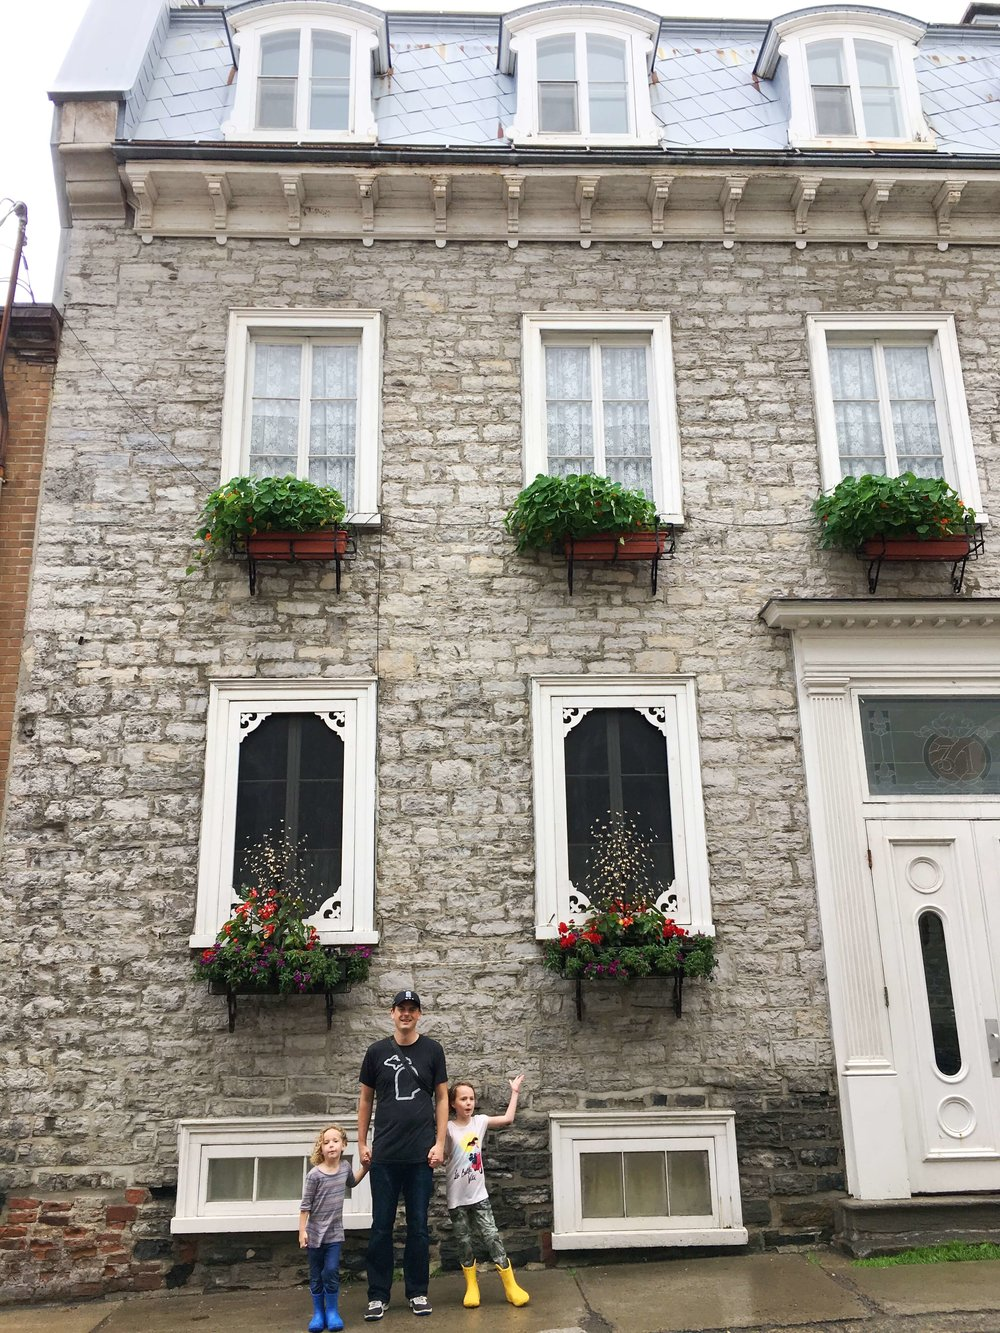 We rented one floor of this beautiful building in Quebec City.